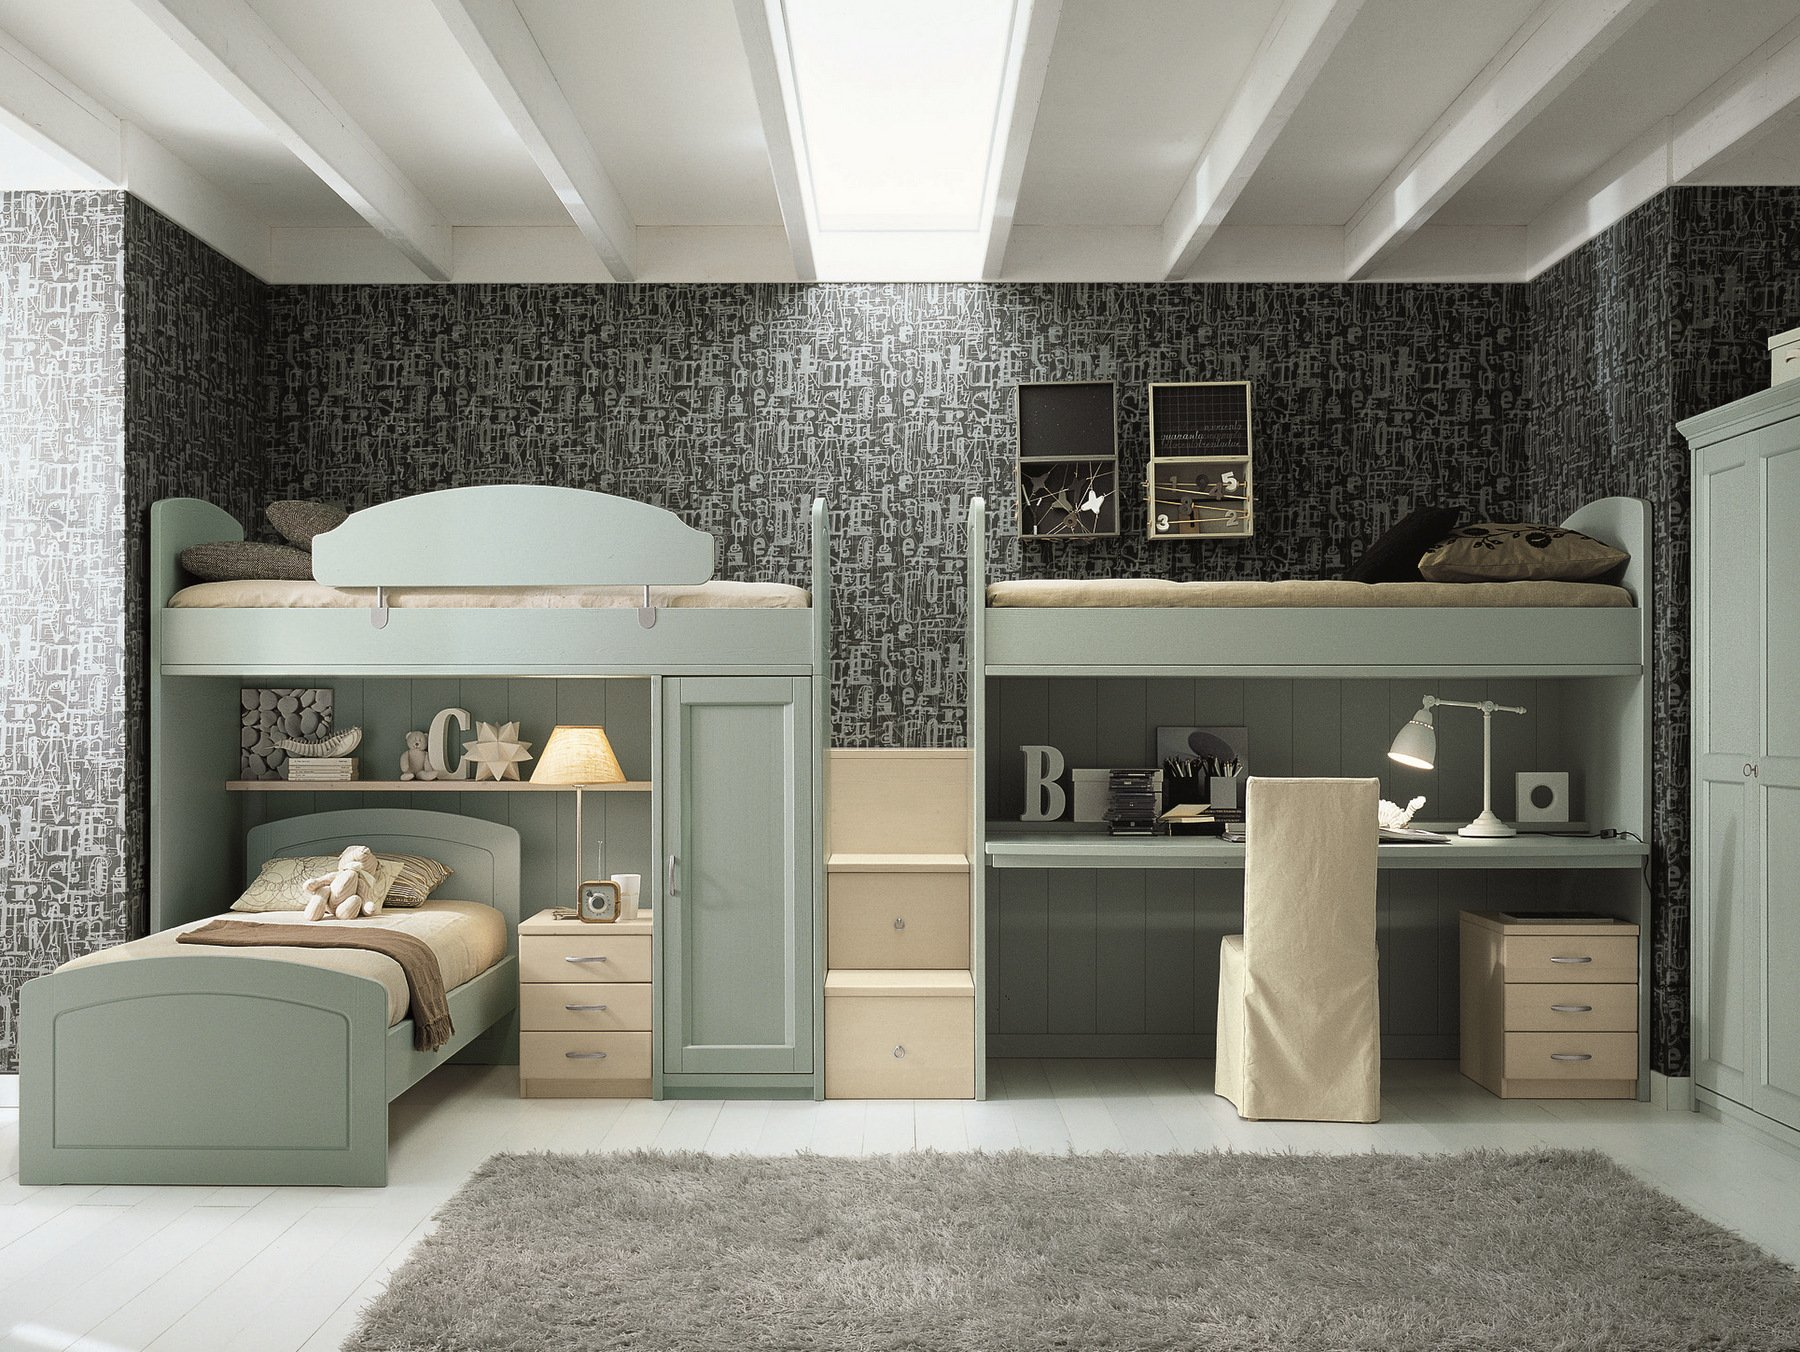 chambre mezzanine pour gar on fille nuovo mondo n16 by scandola mobili. Black Bedroom Furniture Sets. Home Design Ideas